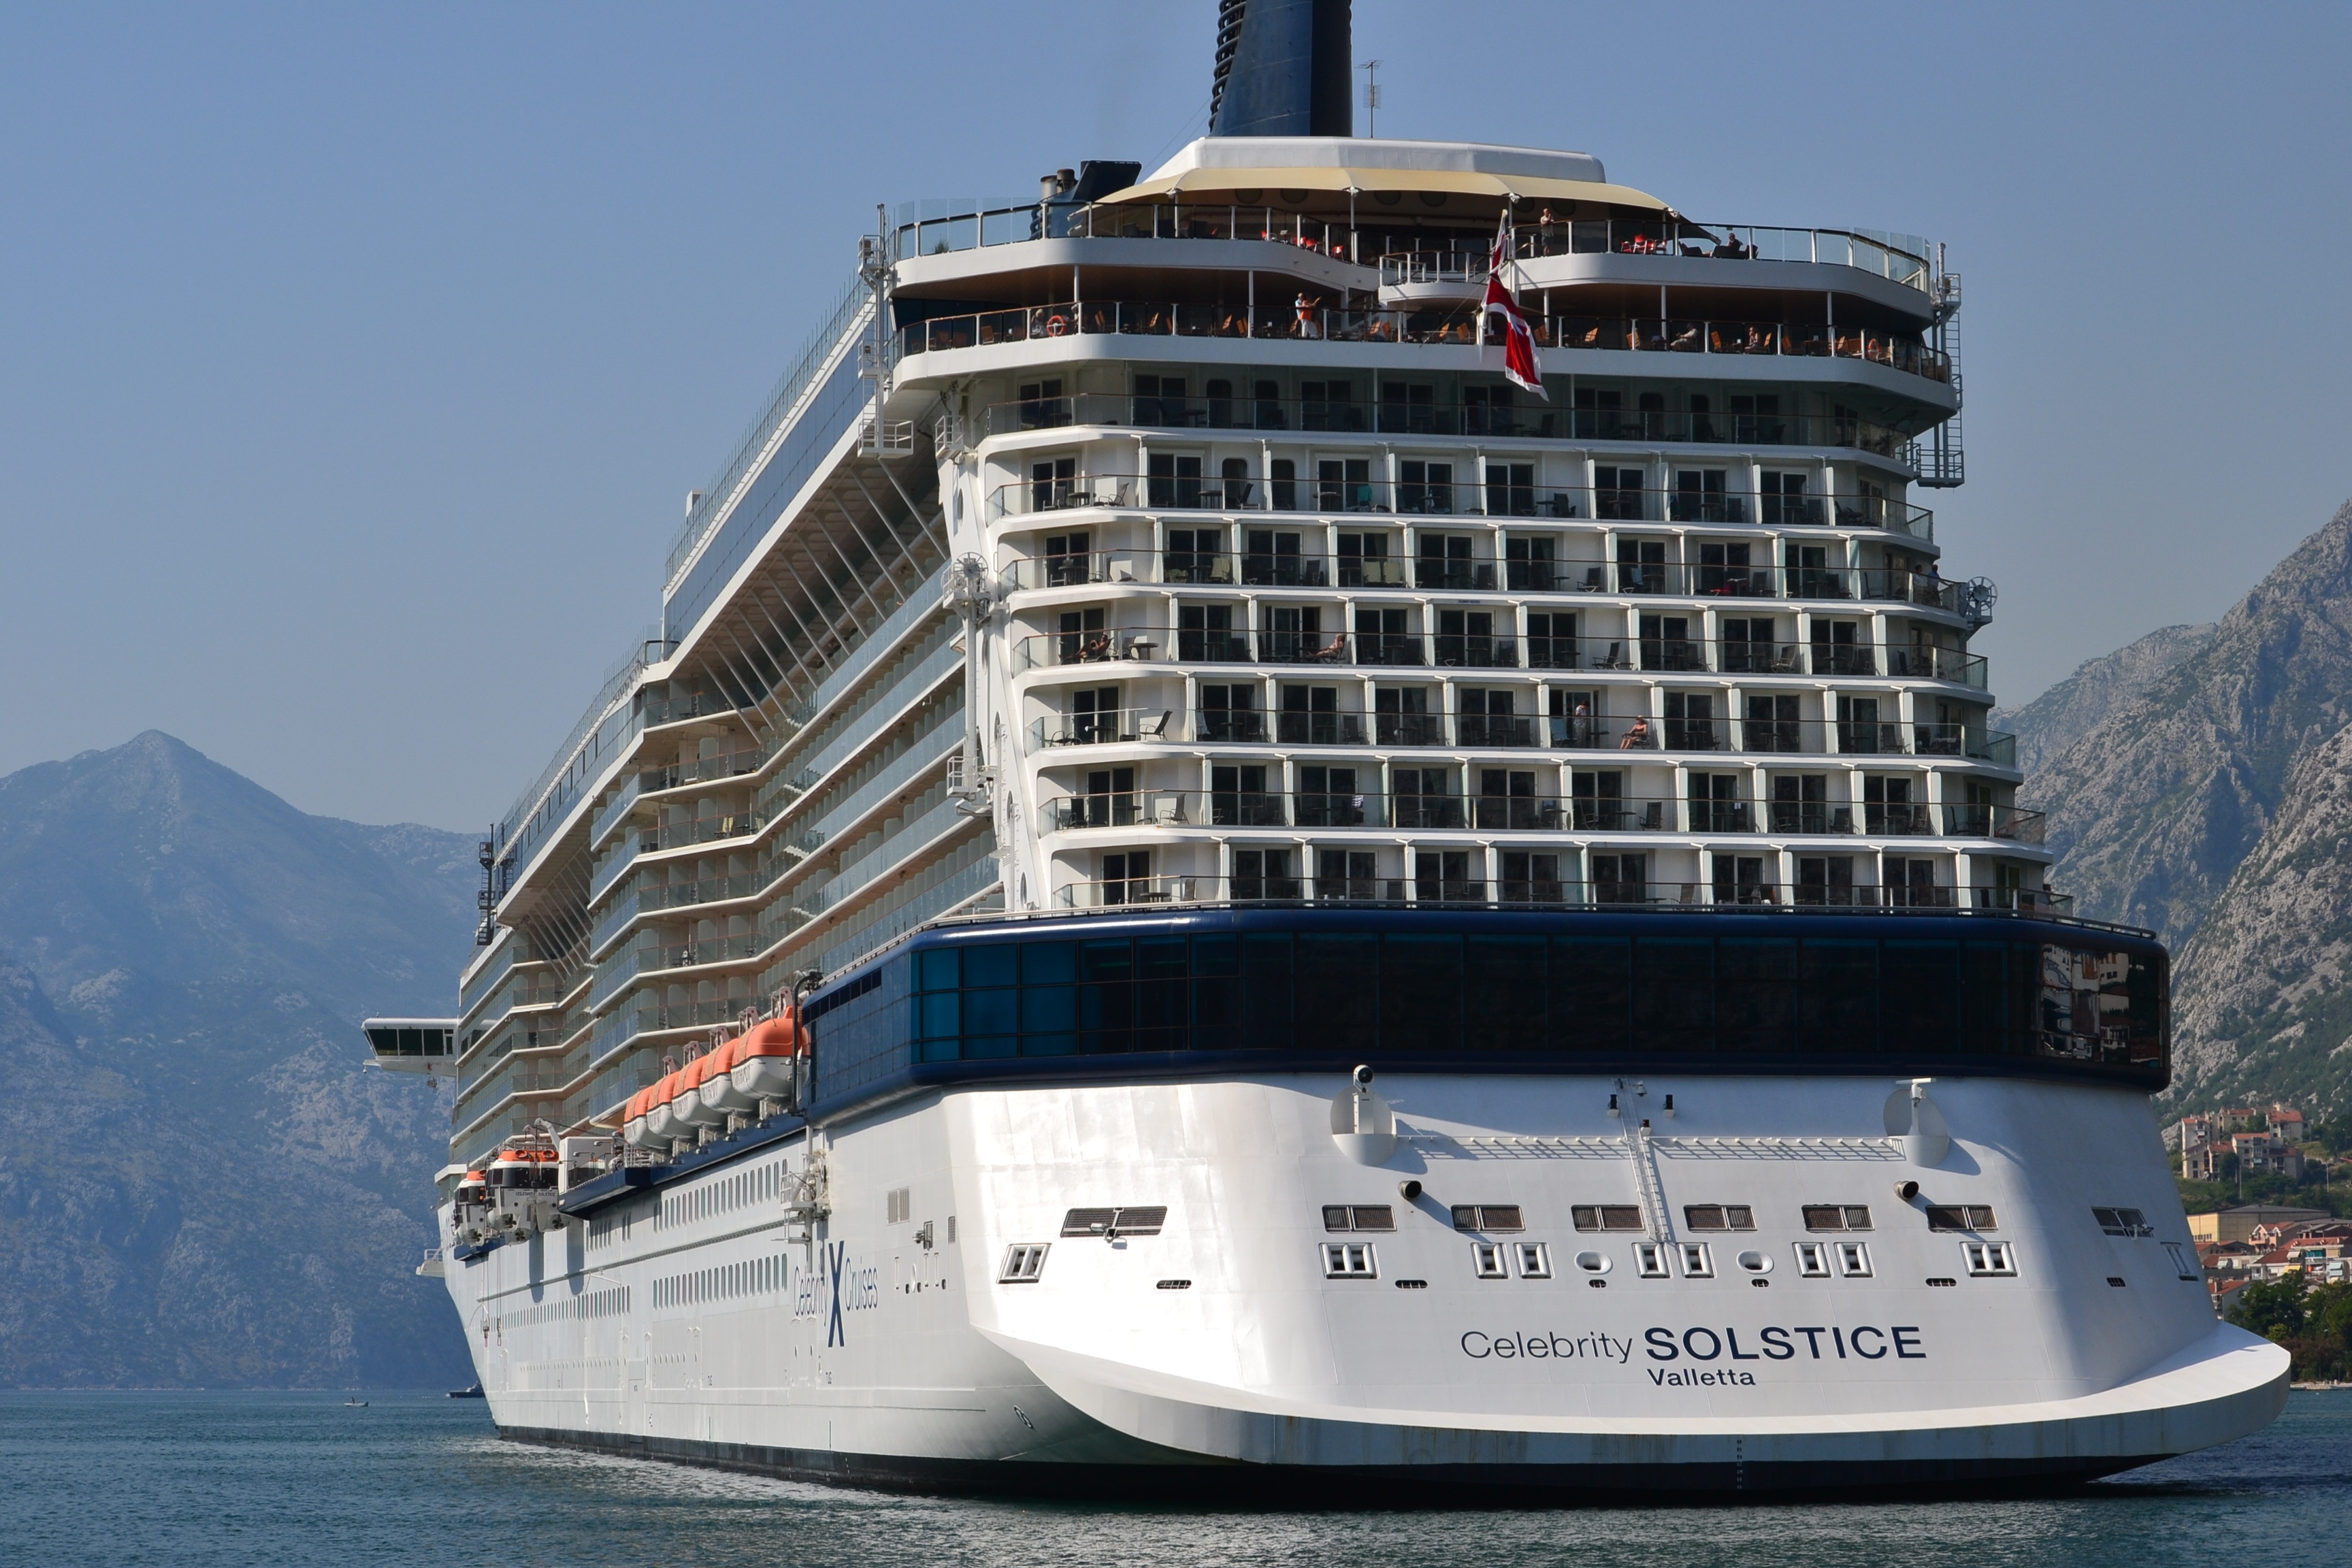 Celebrity solstice full hd fond d 39 cran and arri re plan for Solstice plus plan one